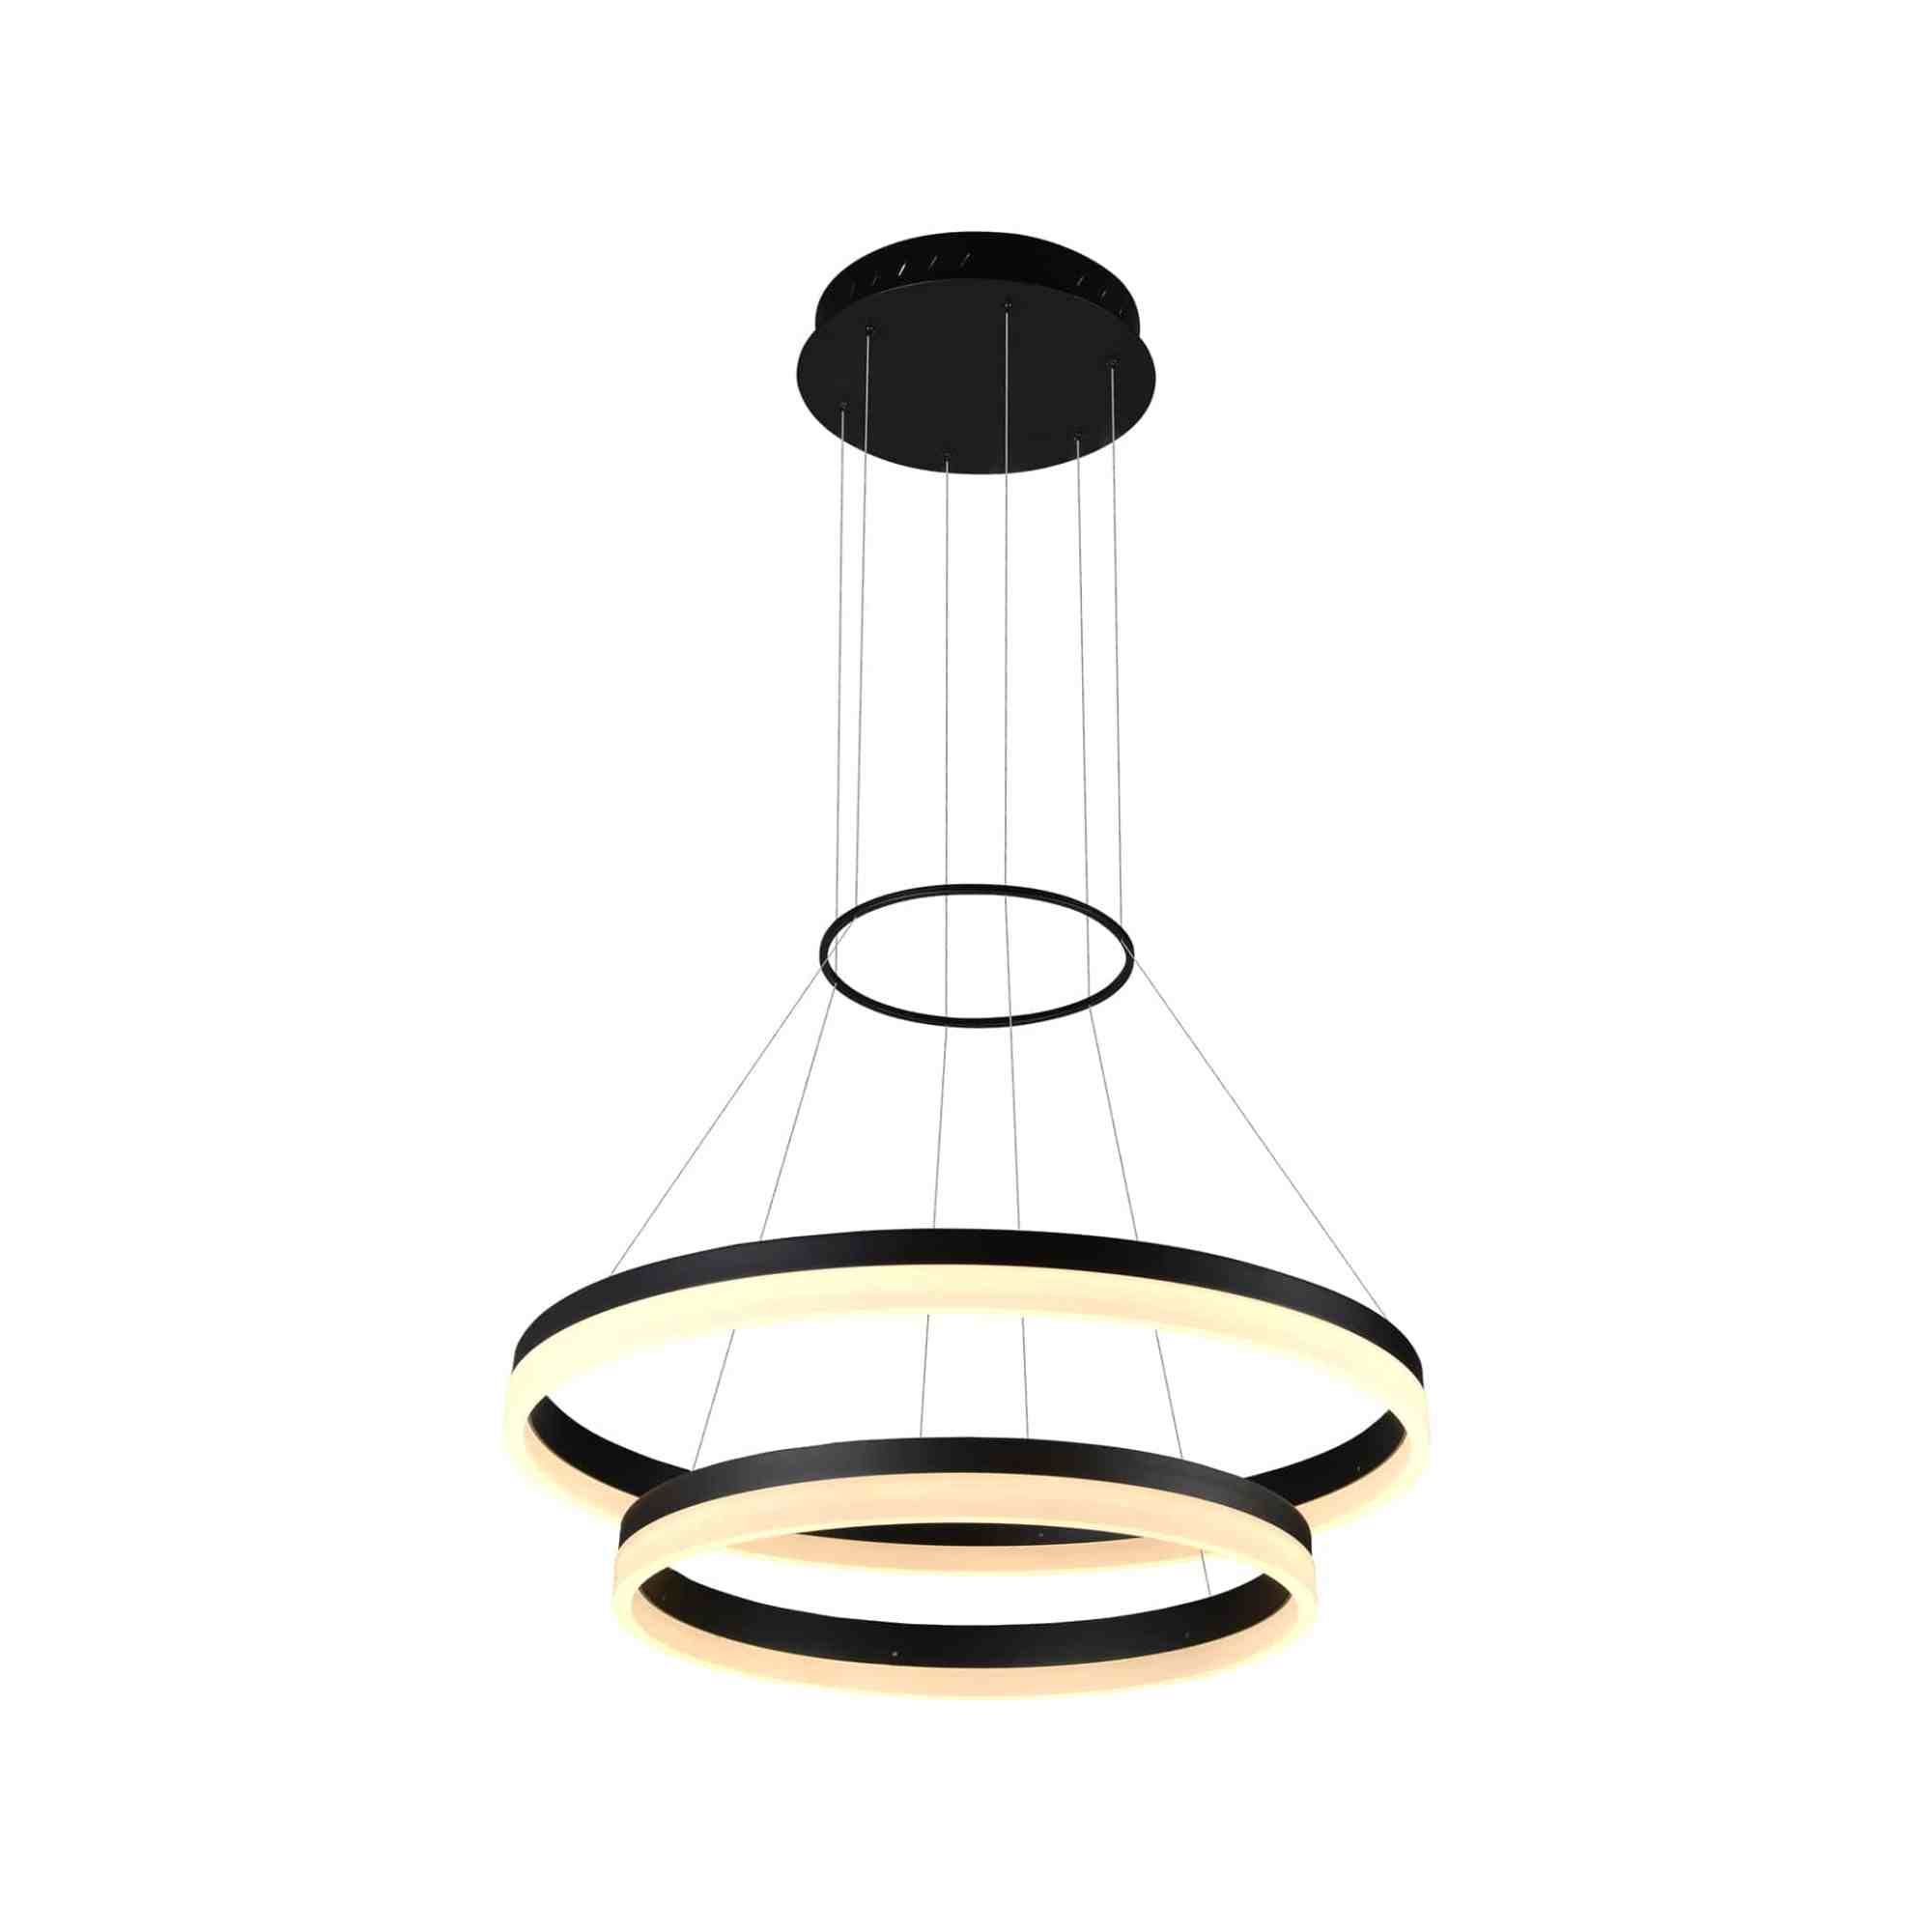 hight resolution of tania duo vmc31730bl 24 led chandelier adjustable suspension fixture modern two tier circular chandelier light in black